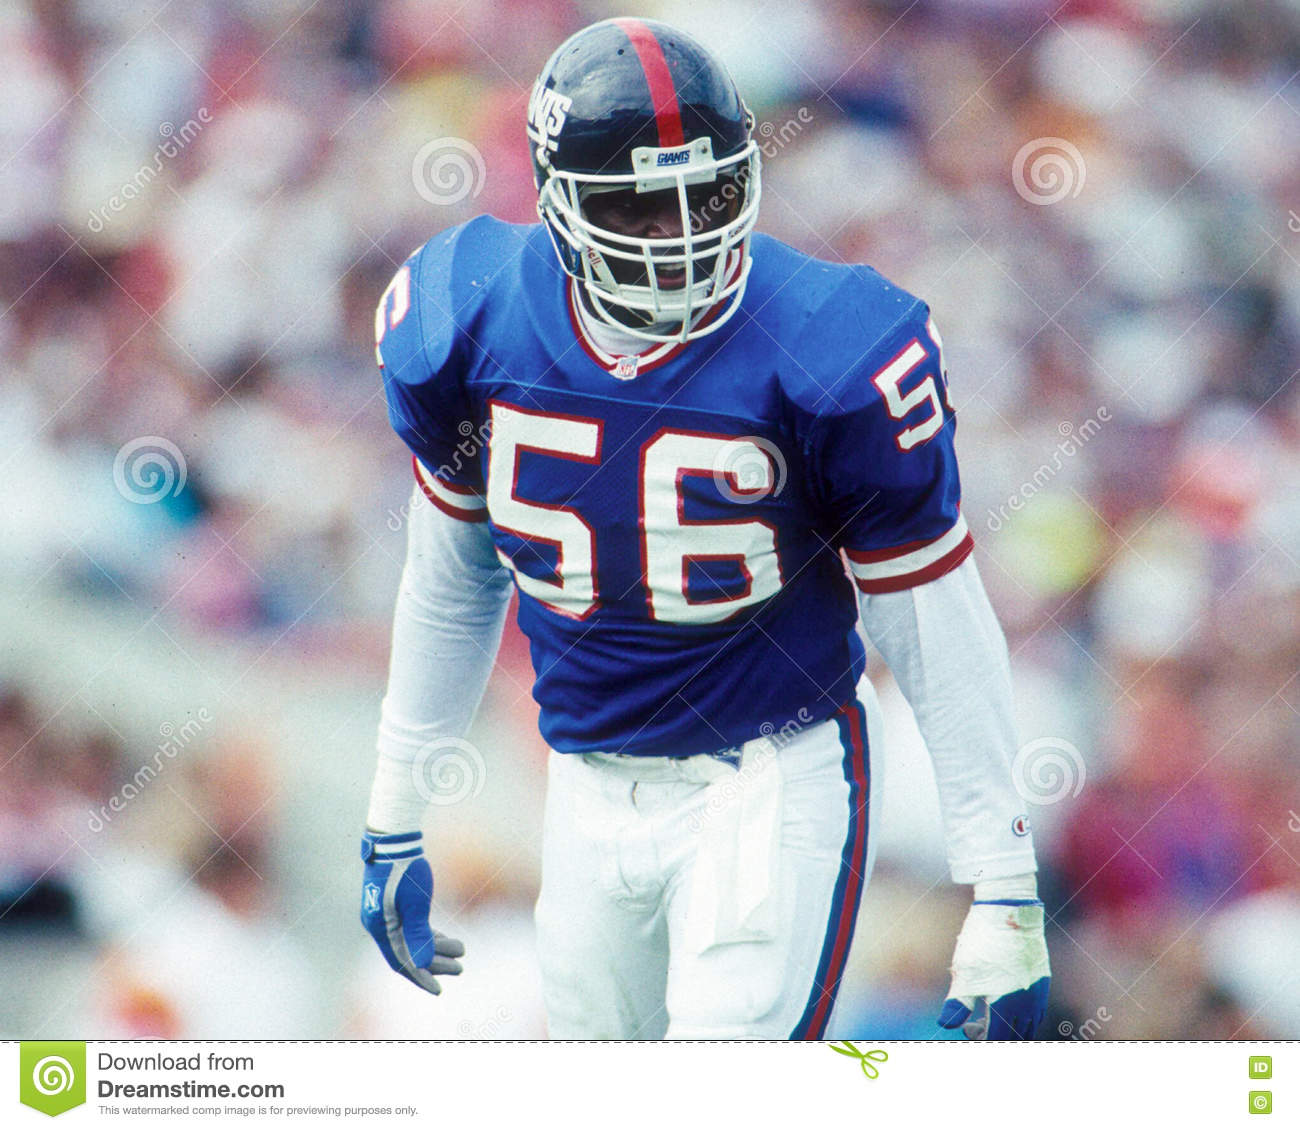 ad10f61df17 New York Giants LB Lawrence Taylor. (Image taken from color slide.)